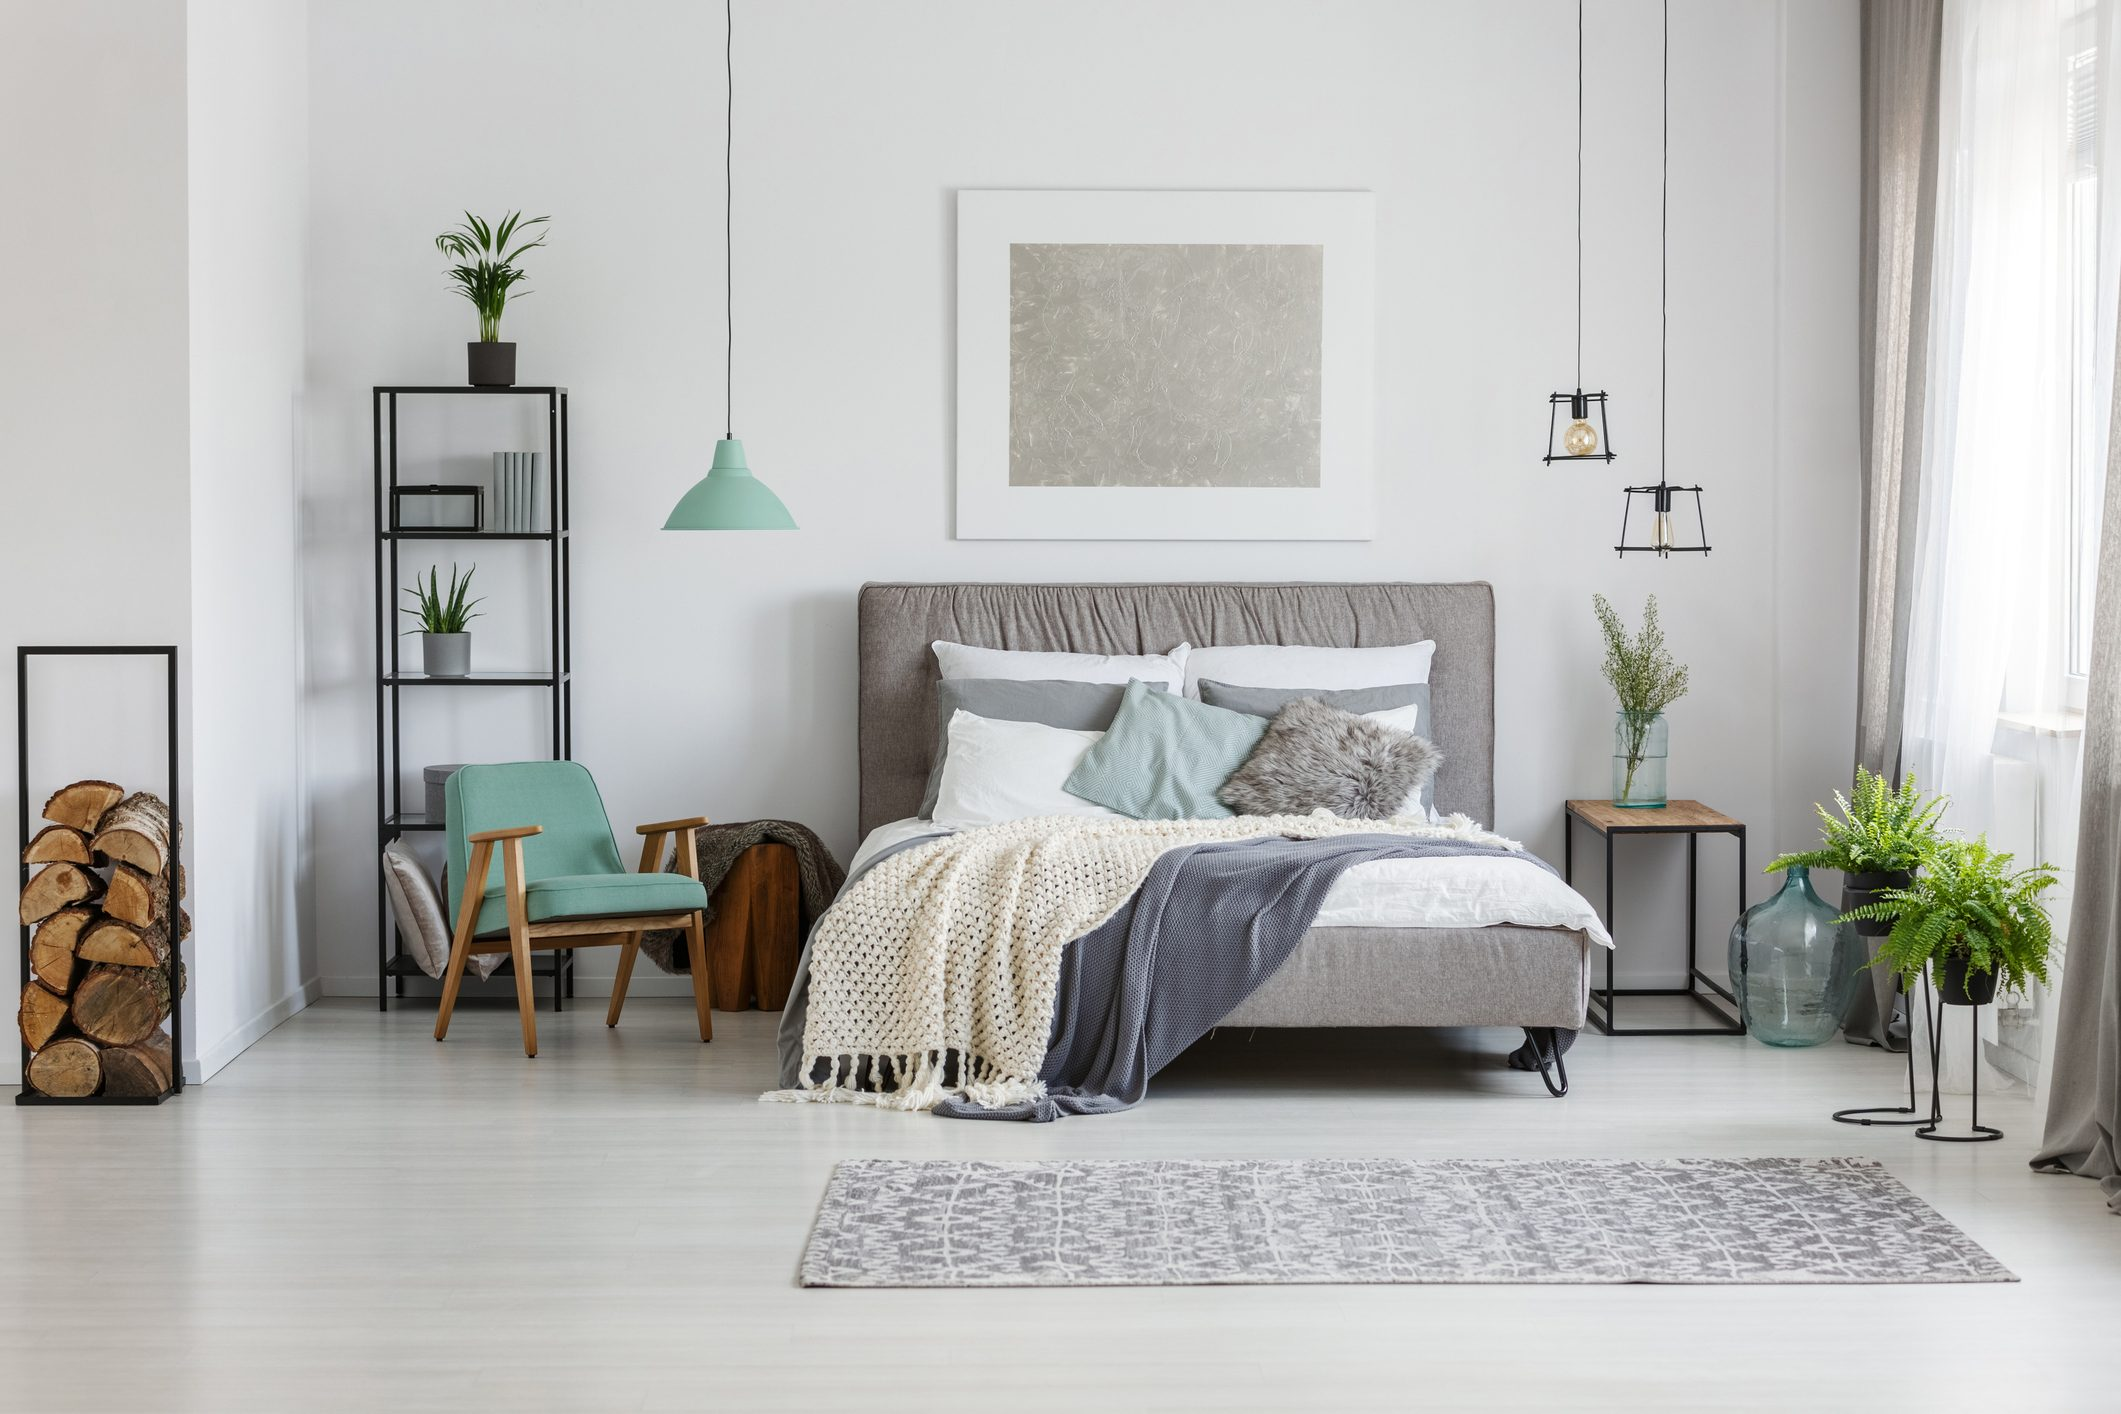 Gray and white bedroom with plants